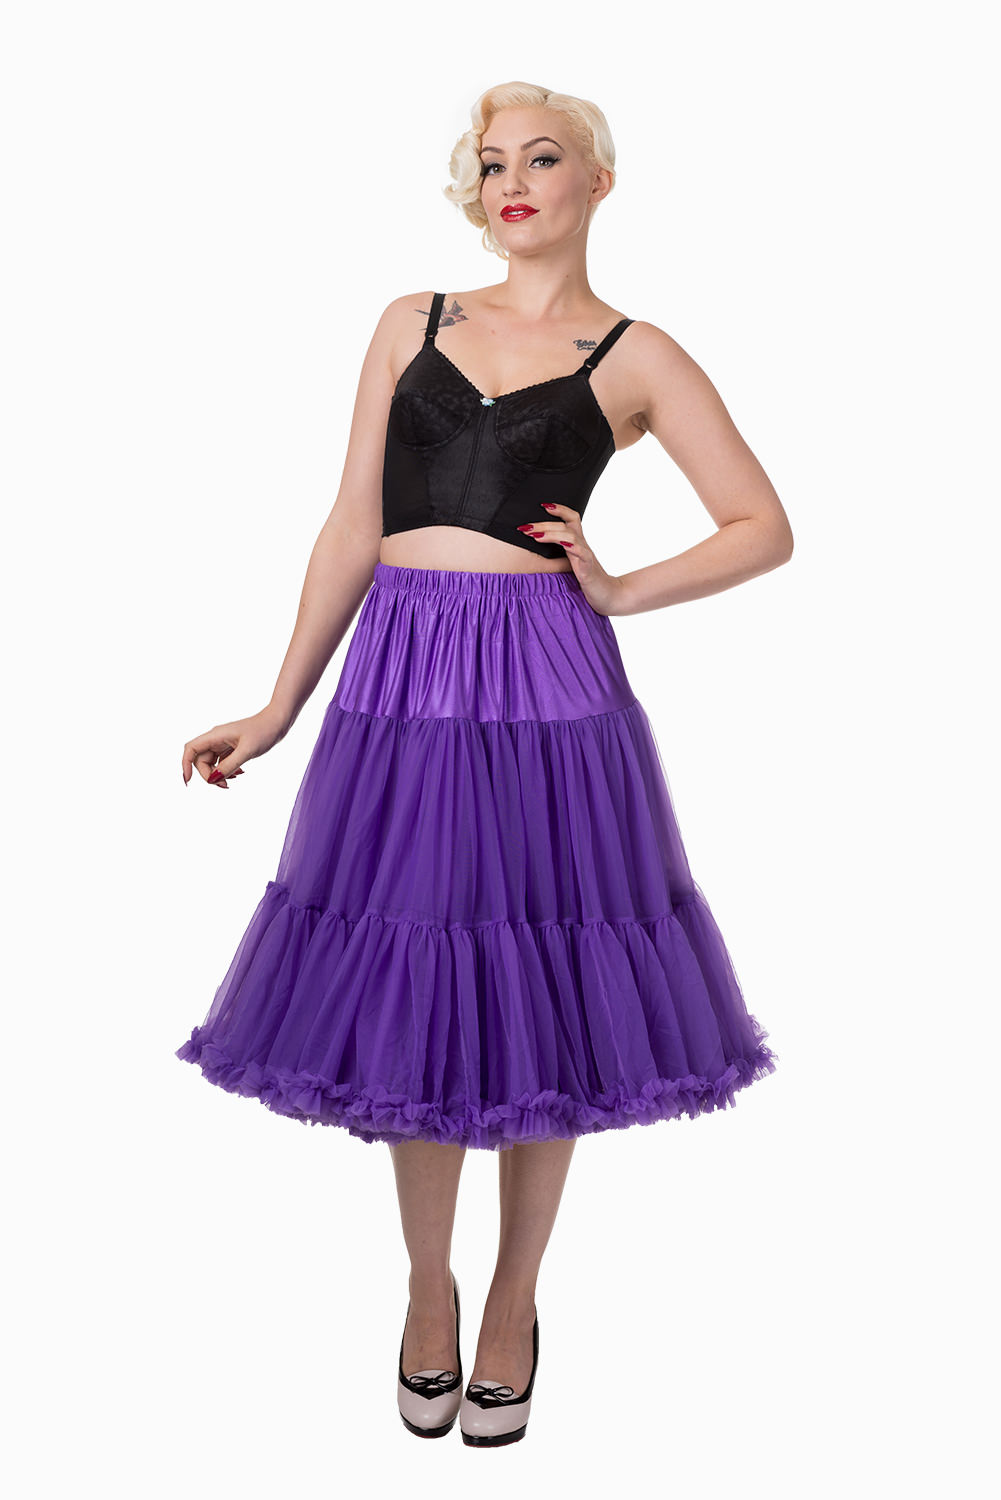 Banned Purple Lifeforms Petticoat